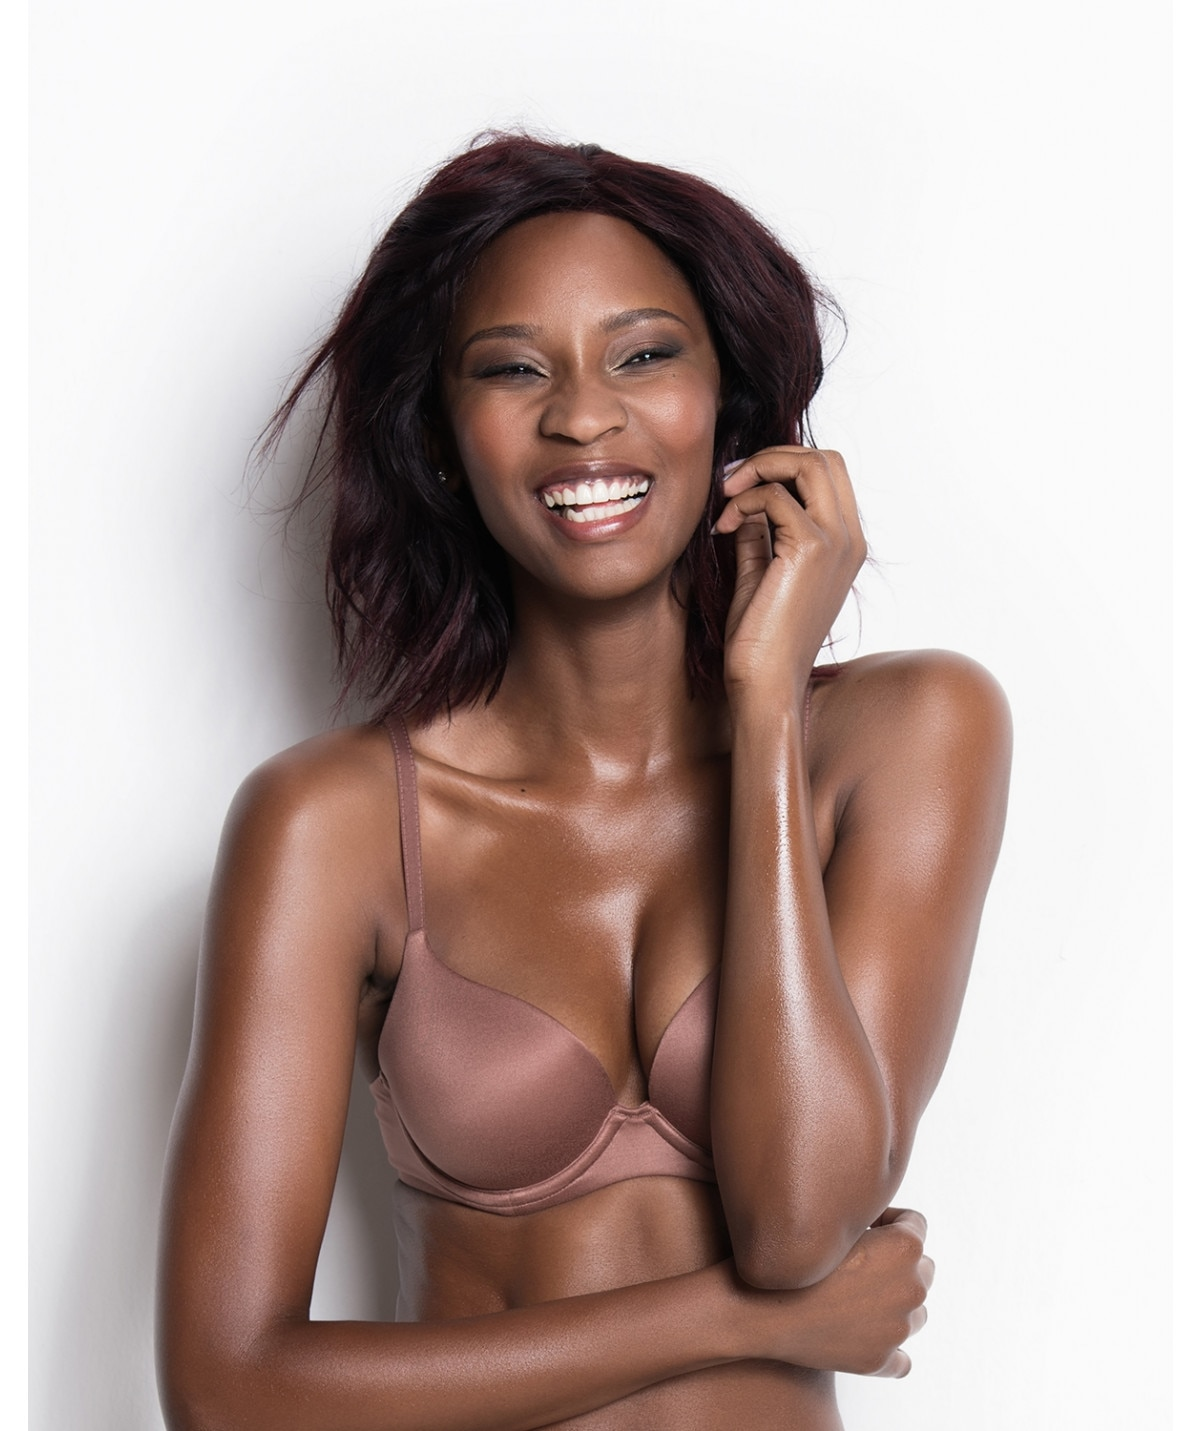 c9322c5ec1484 Body Bliss Contour Bra - Mocha.  49.99.  49.99. 4 ...